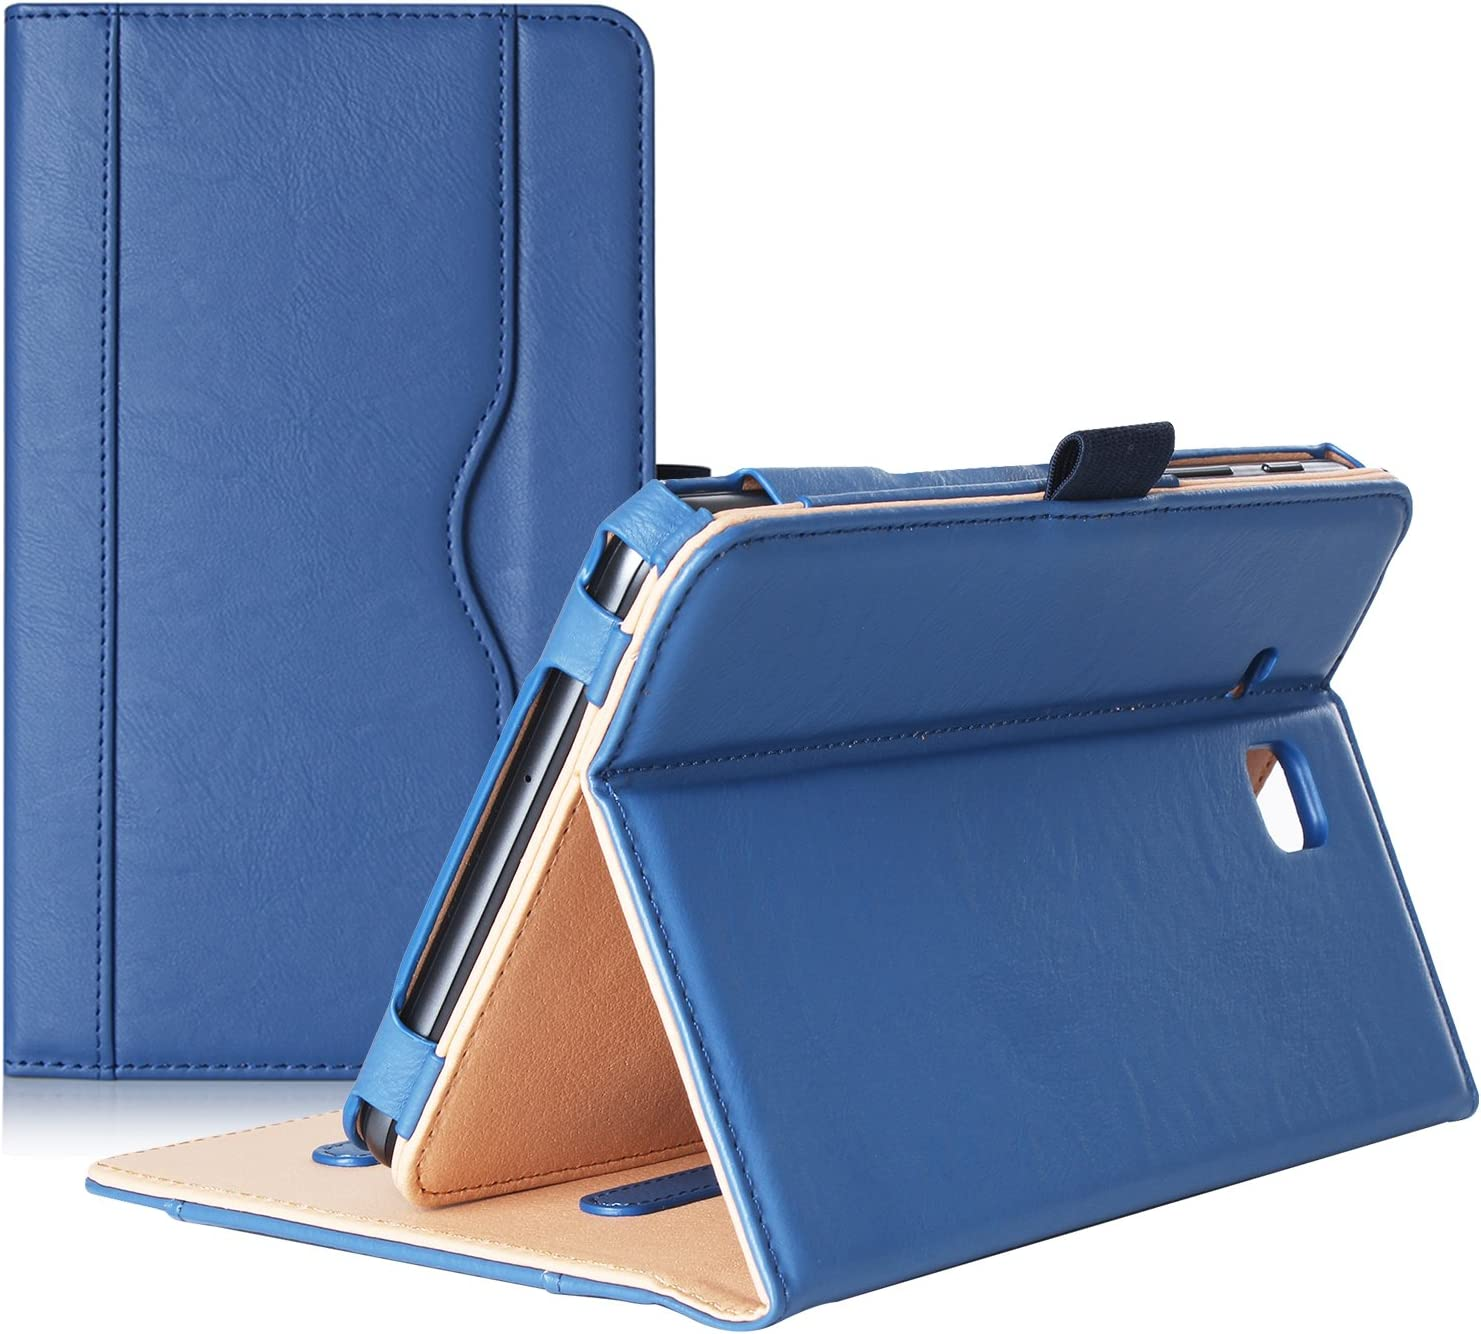 ProCase Galaxy Tab A 7.0 2016 Case T280 T285, Stand Folio Case Cover for Galaxy Tab A 7.0 SM-T280 SM-T285 Tablet, with Multiple Viewing Angles, Document Card Pocket (Navy Blue)